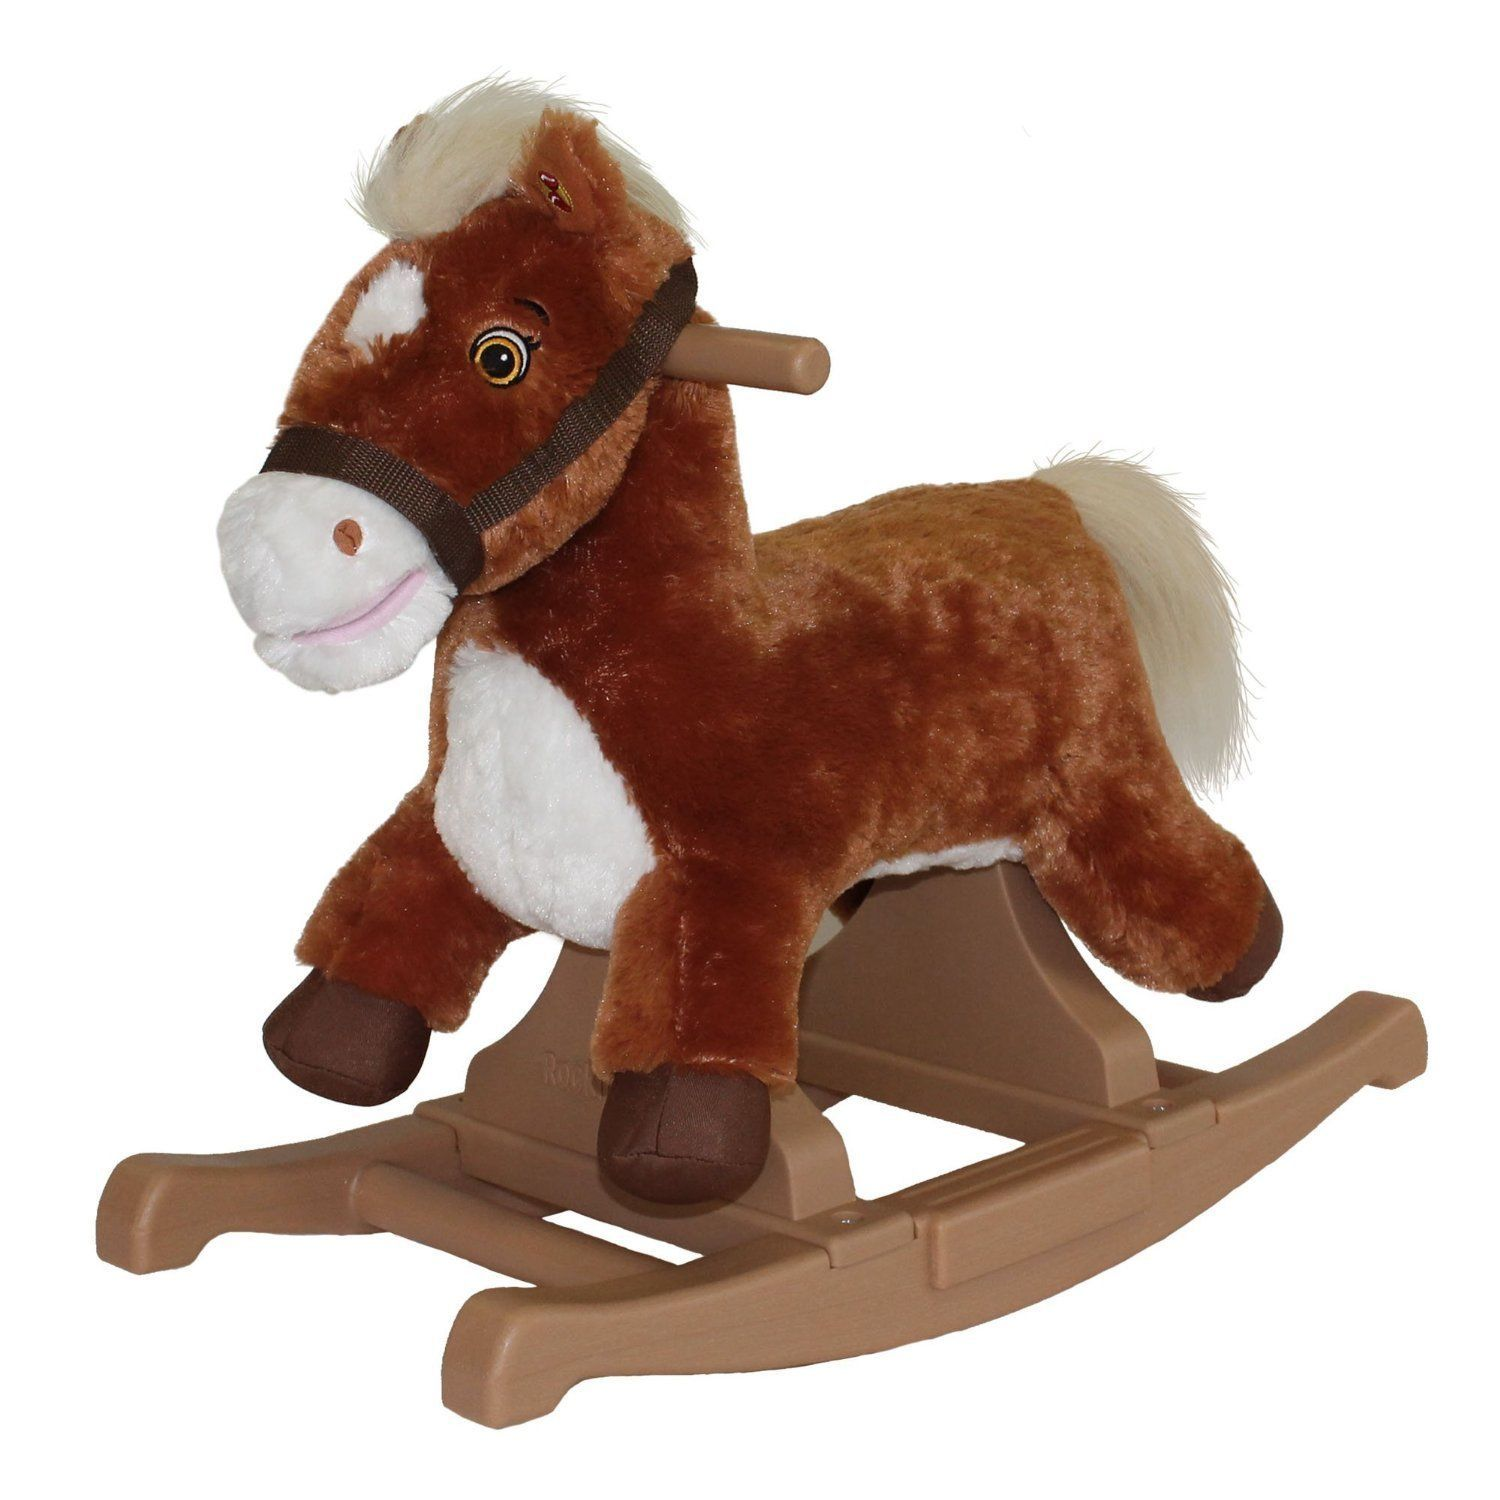 rocking horse riding Find great deals on ebay for childs rocking horse and childs ride on toys shop with confidence.